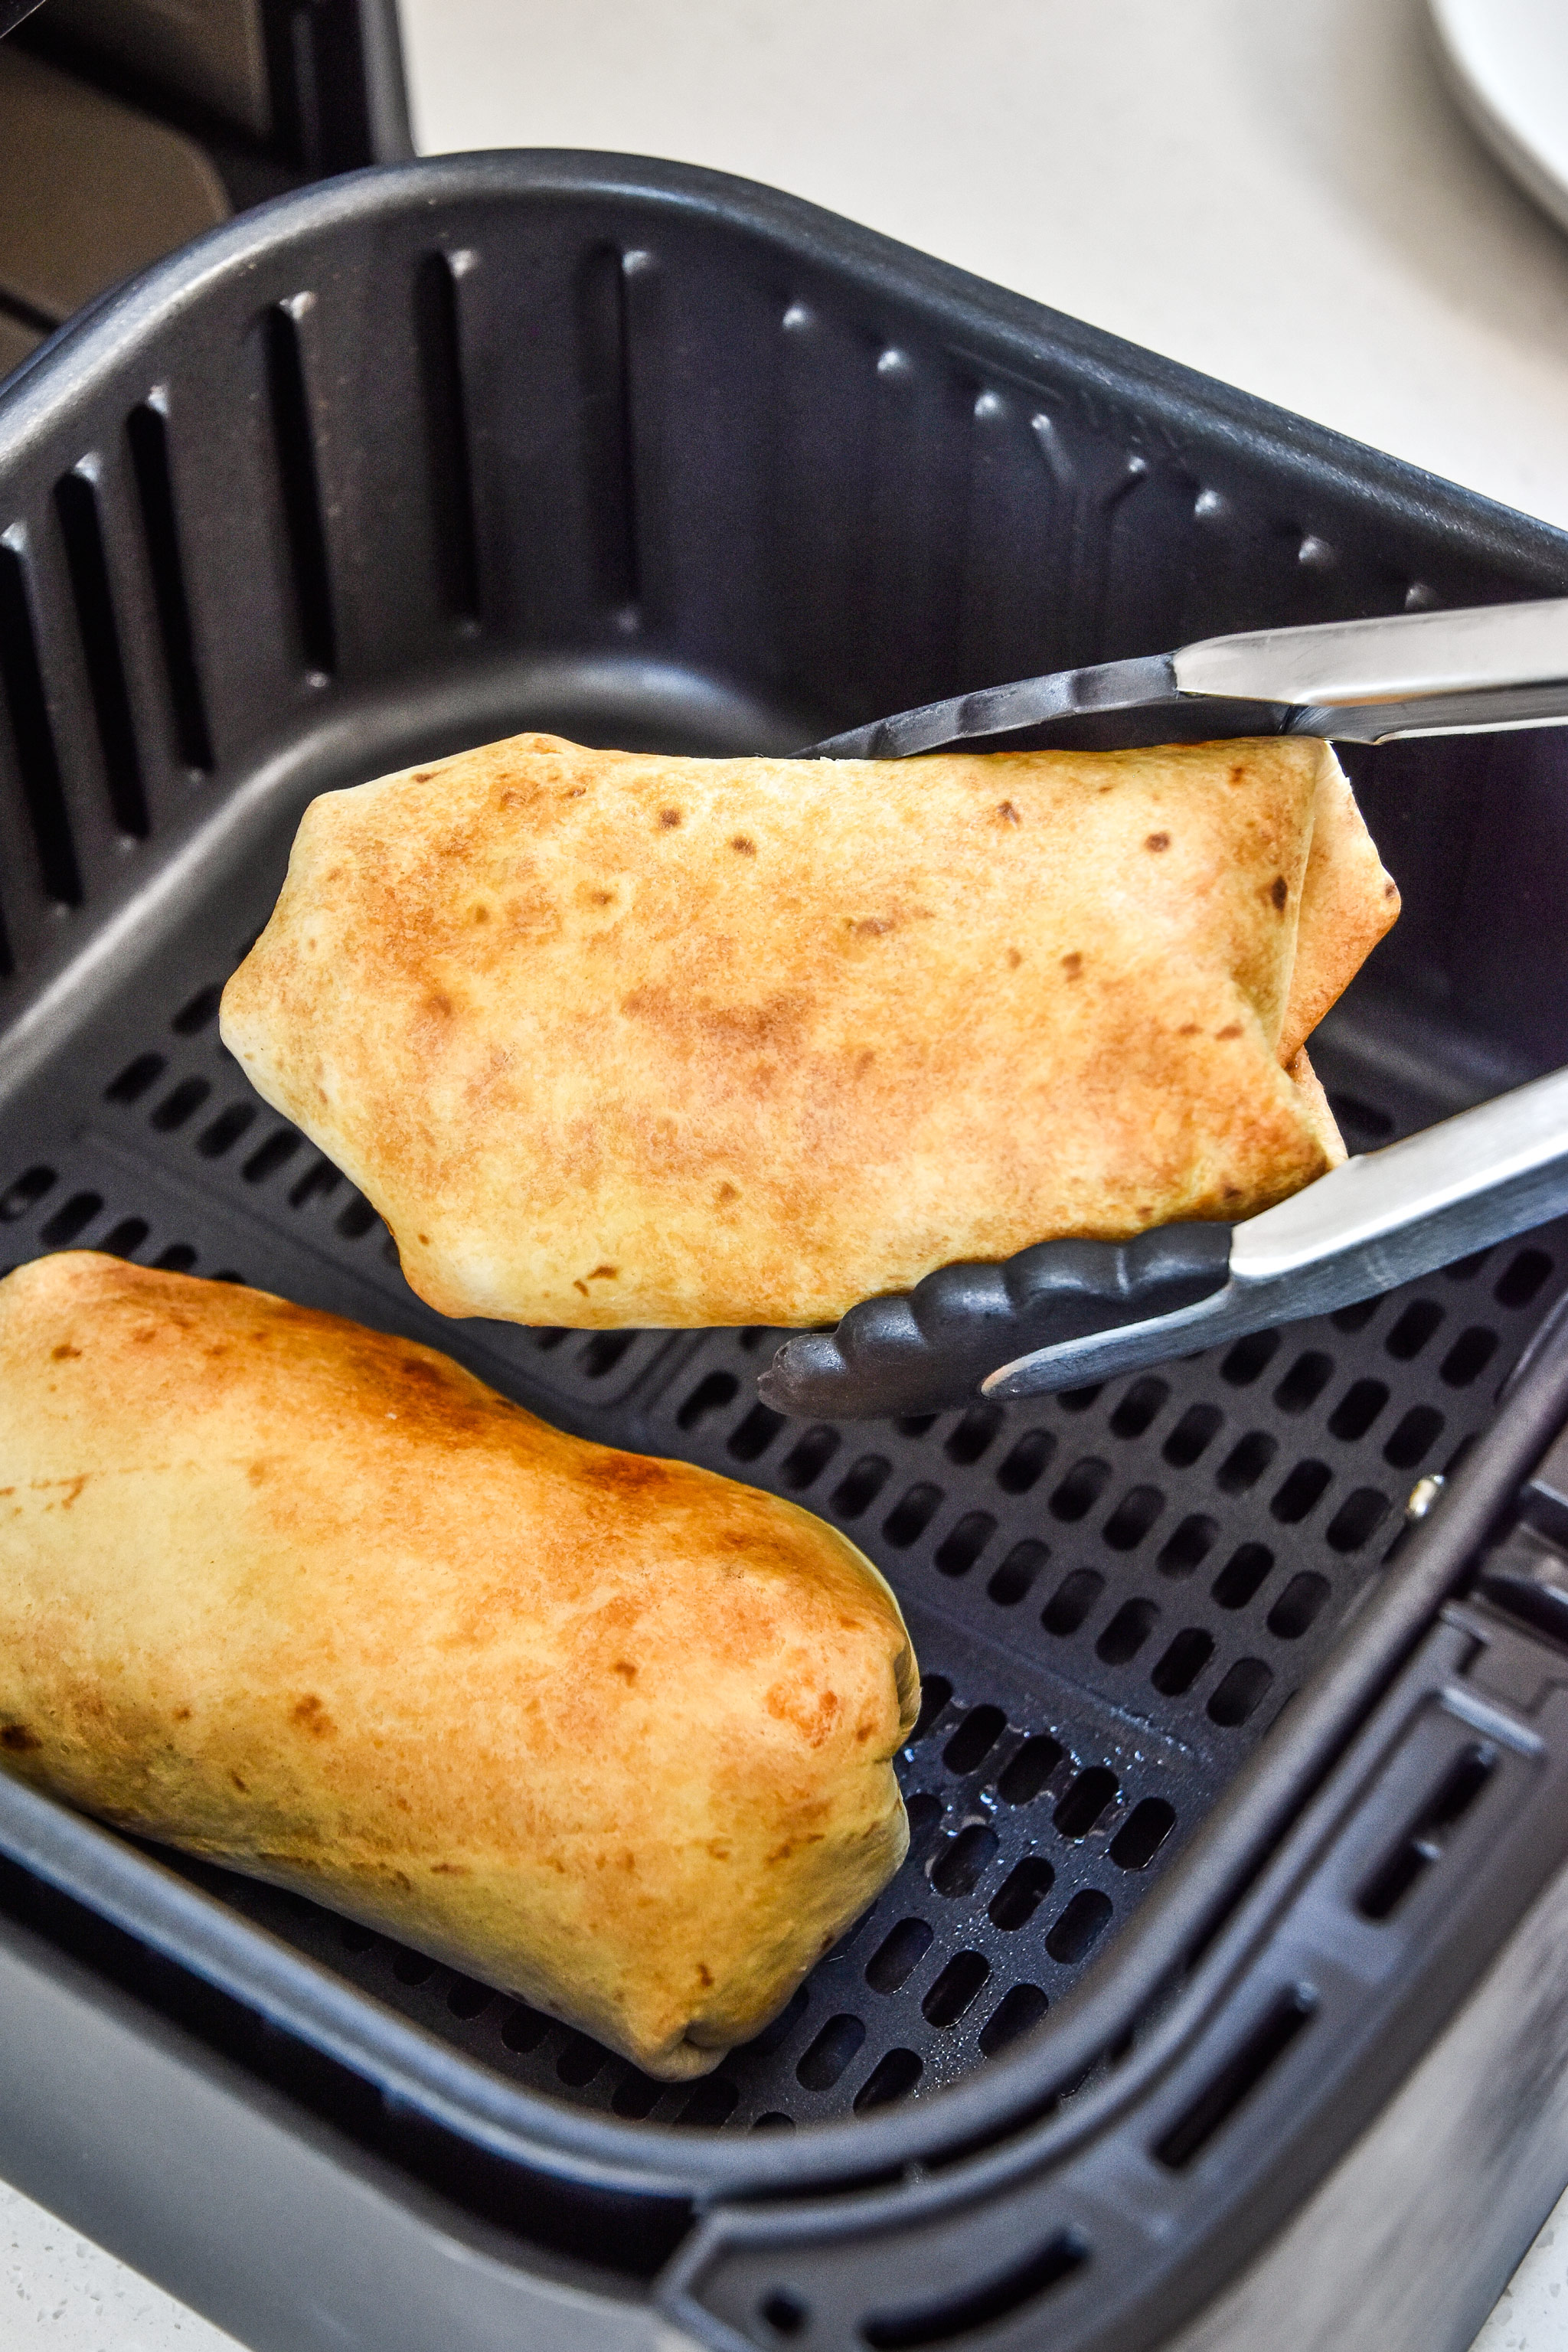 air fryer breakfast burritos just cooked in the air fryer